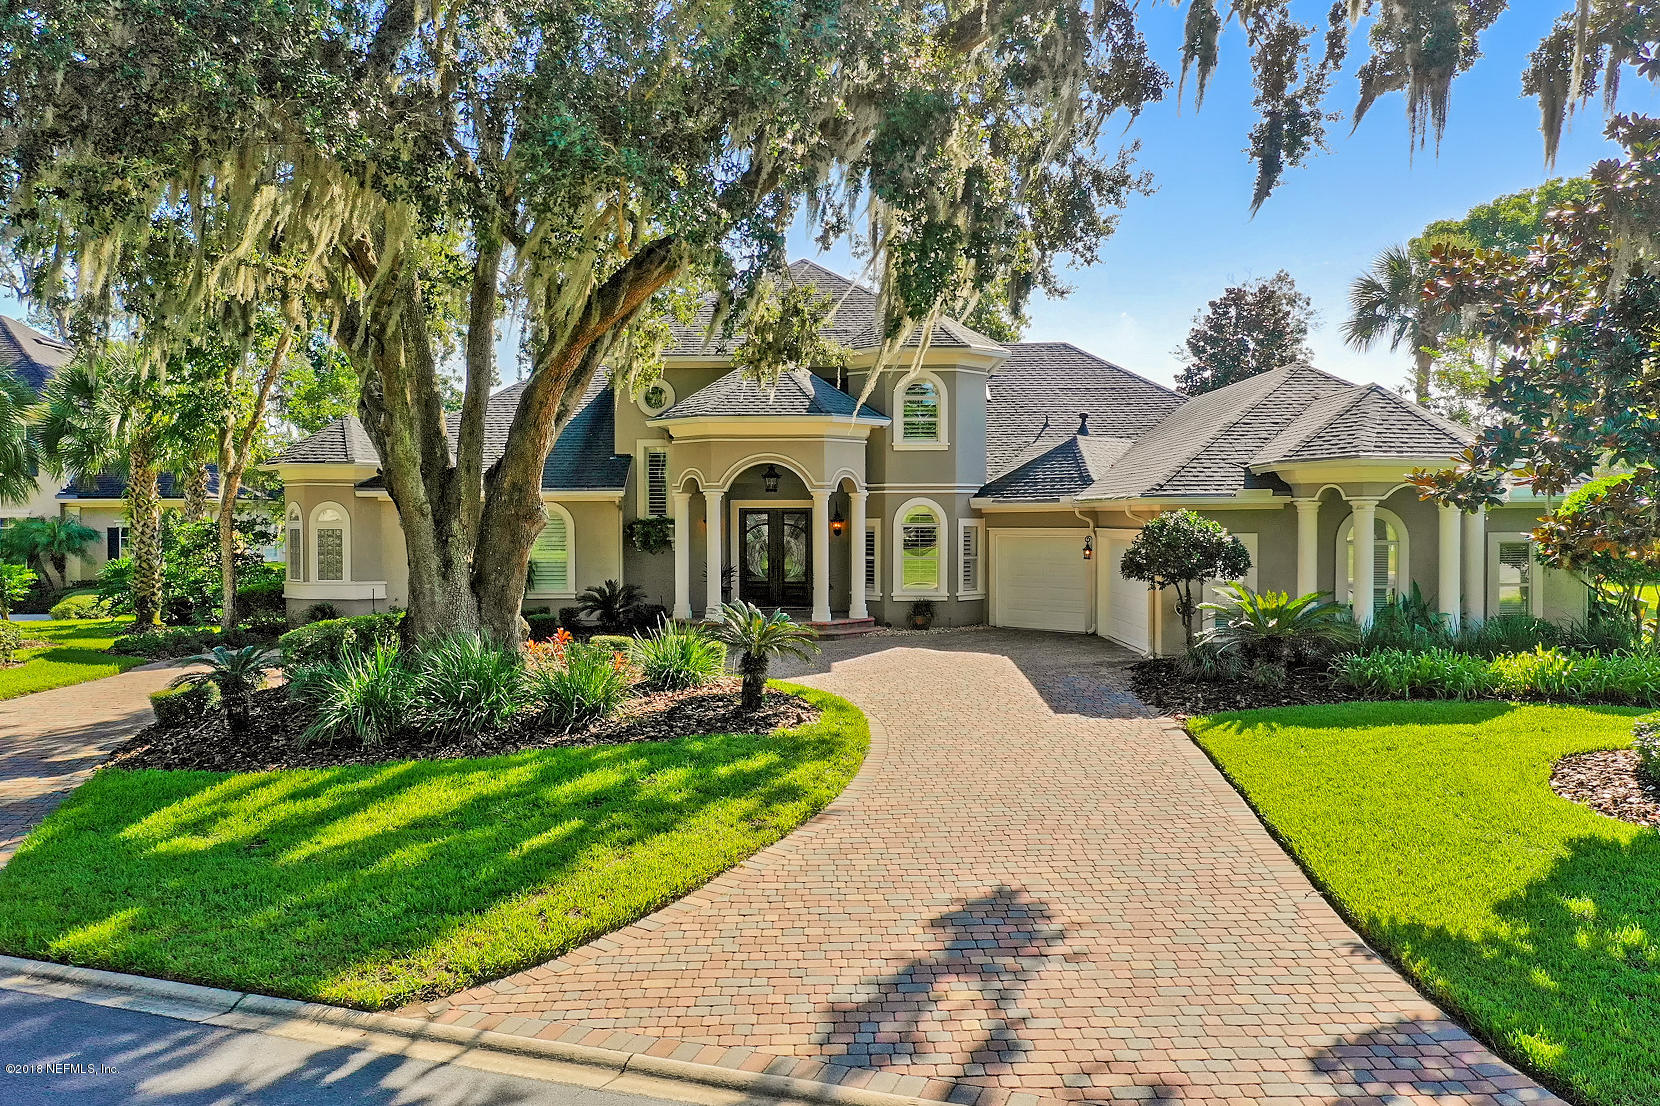 1609 SHEFFIELD PARK, JACKSONVILLE, FLORIDA 32225, 4 Bedrooms Bedrooms, ,4 BathroomsBathrooms,Residential - single family,For sale,SHEFFIELD PARK,961120